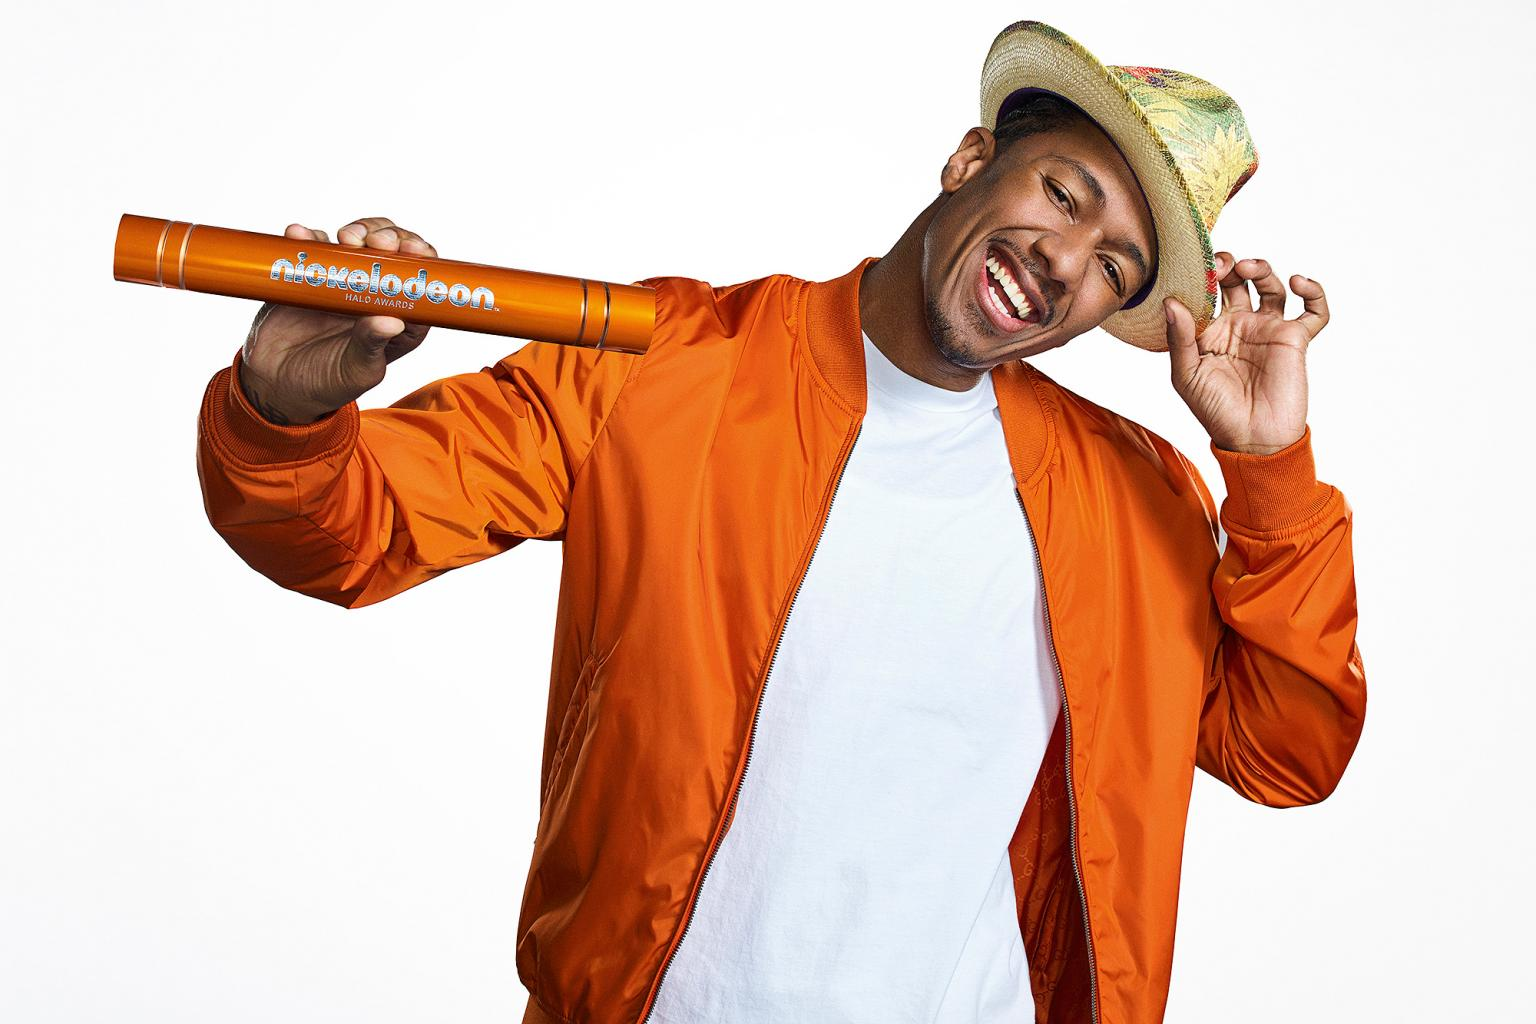 Nick Cannon Set to Host 2016 Nickelodeon Halo Awards